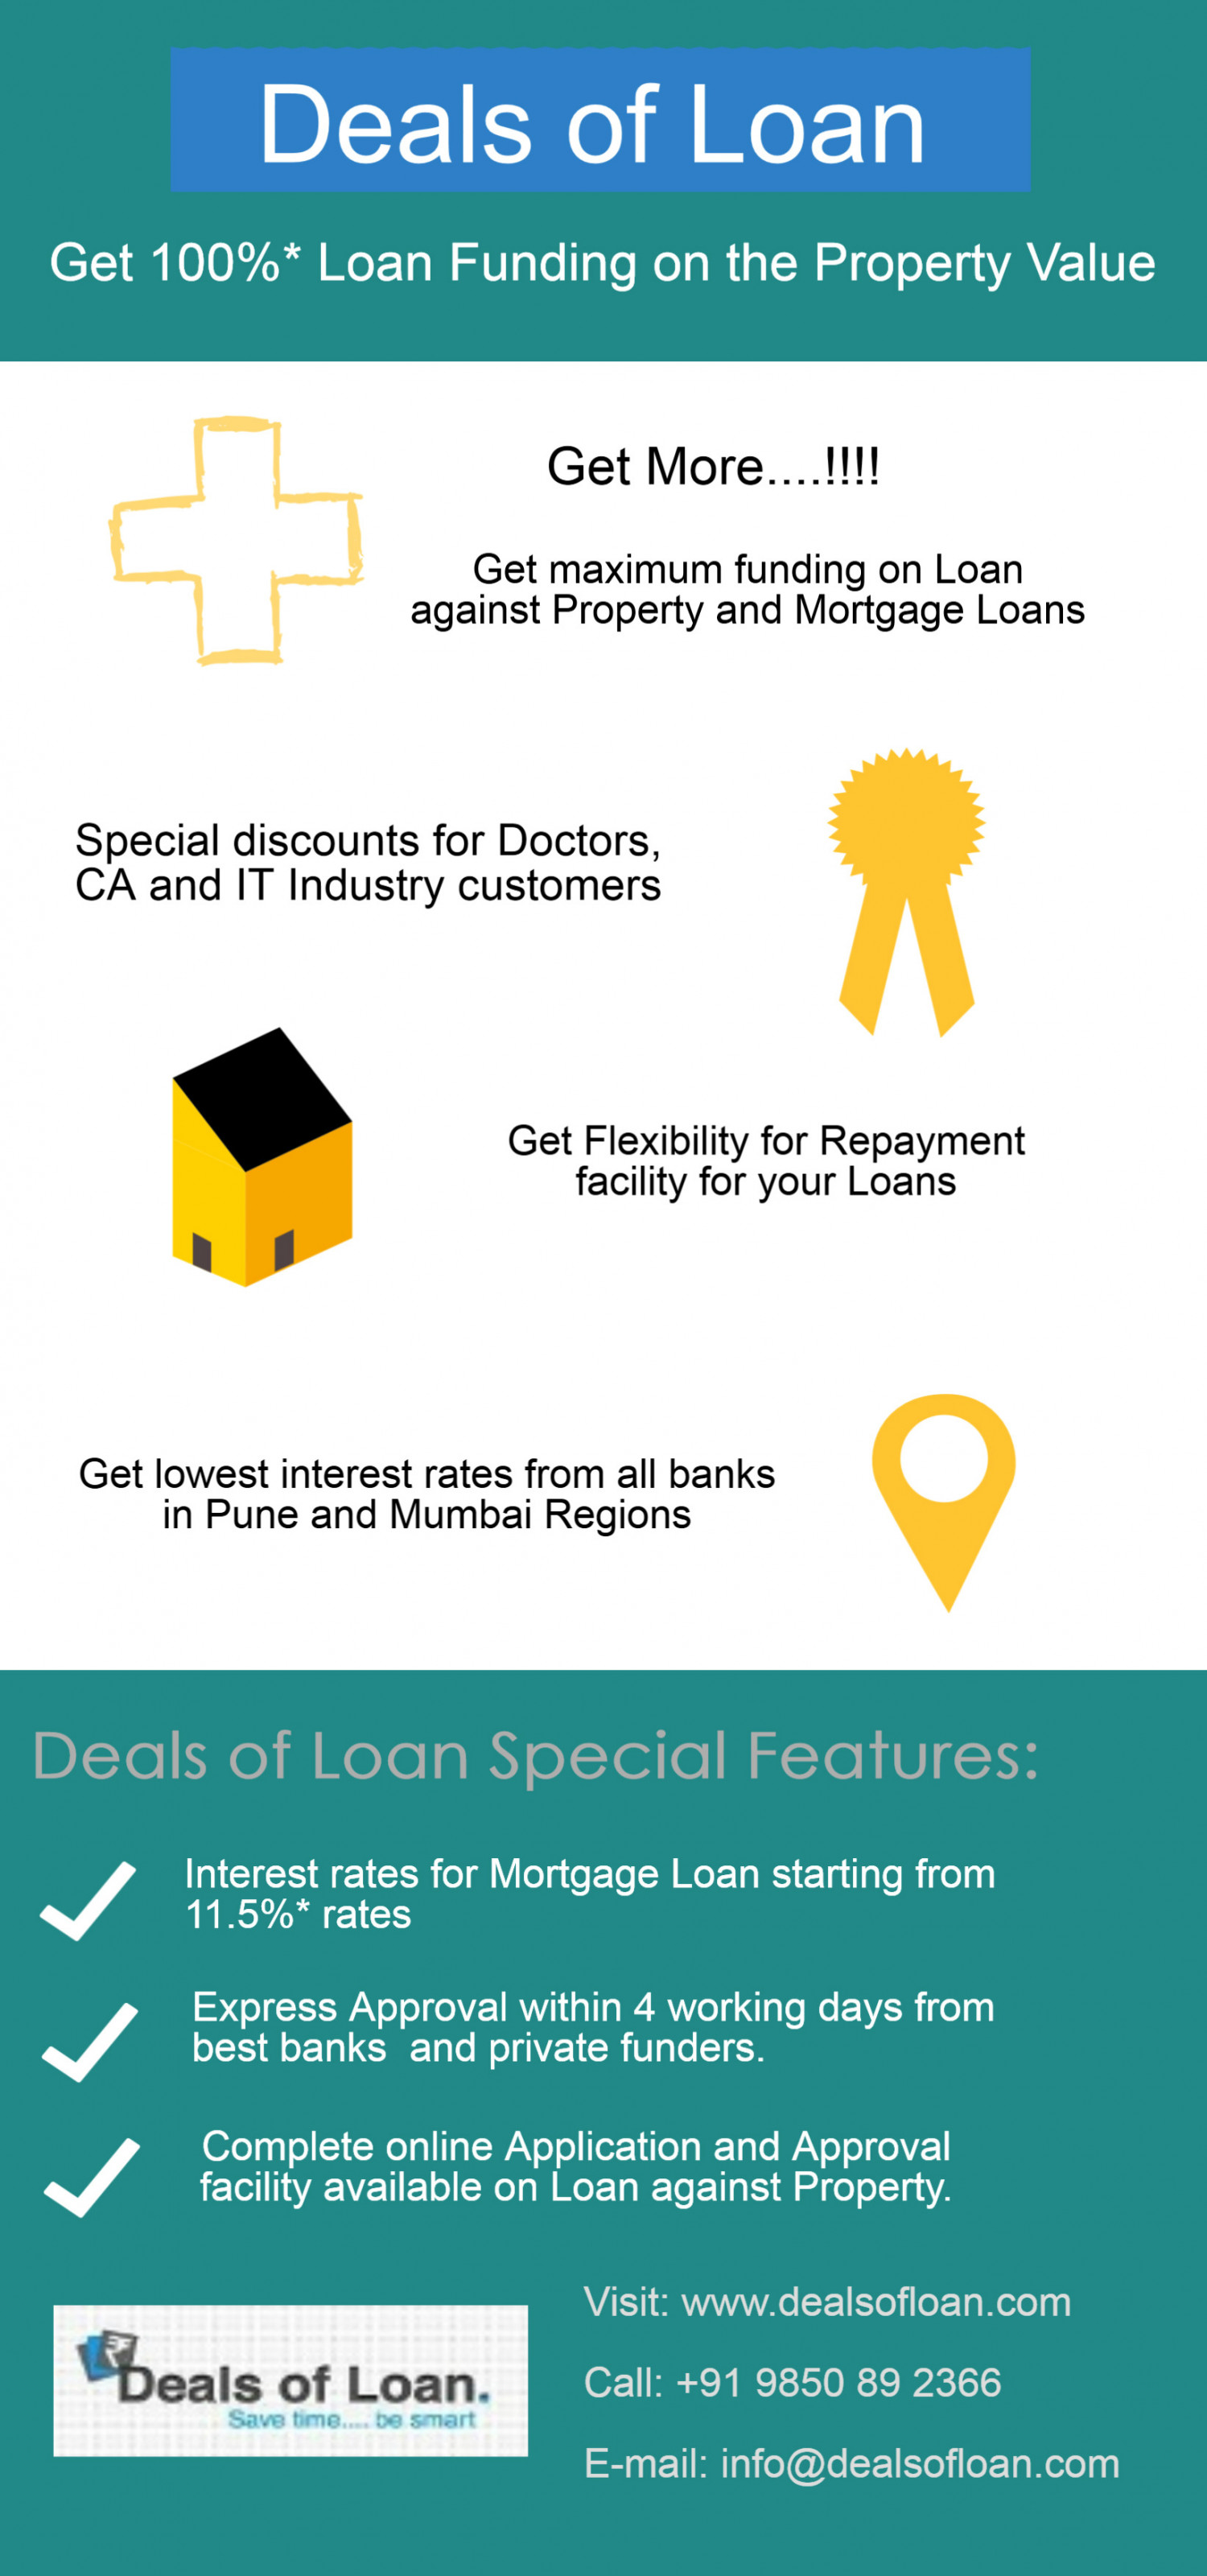 Deals of Loan Mortgage Loans Infographic